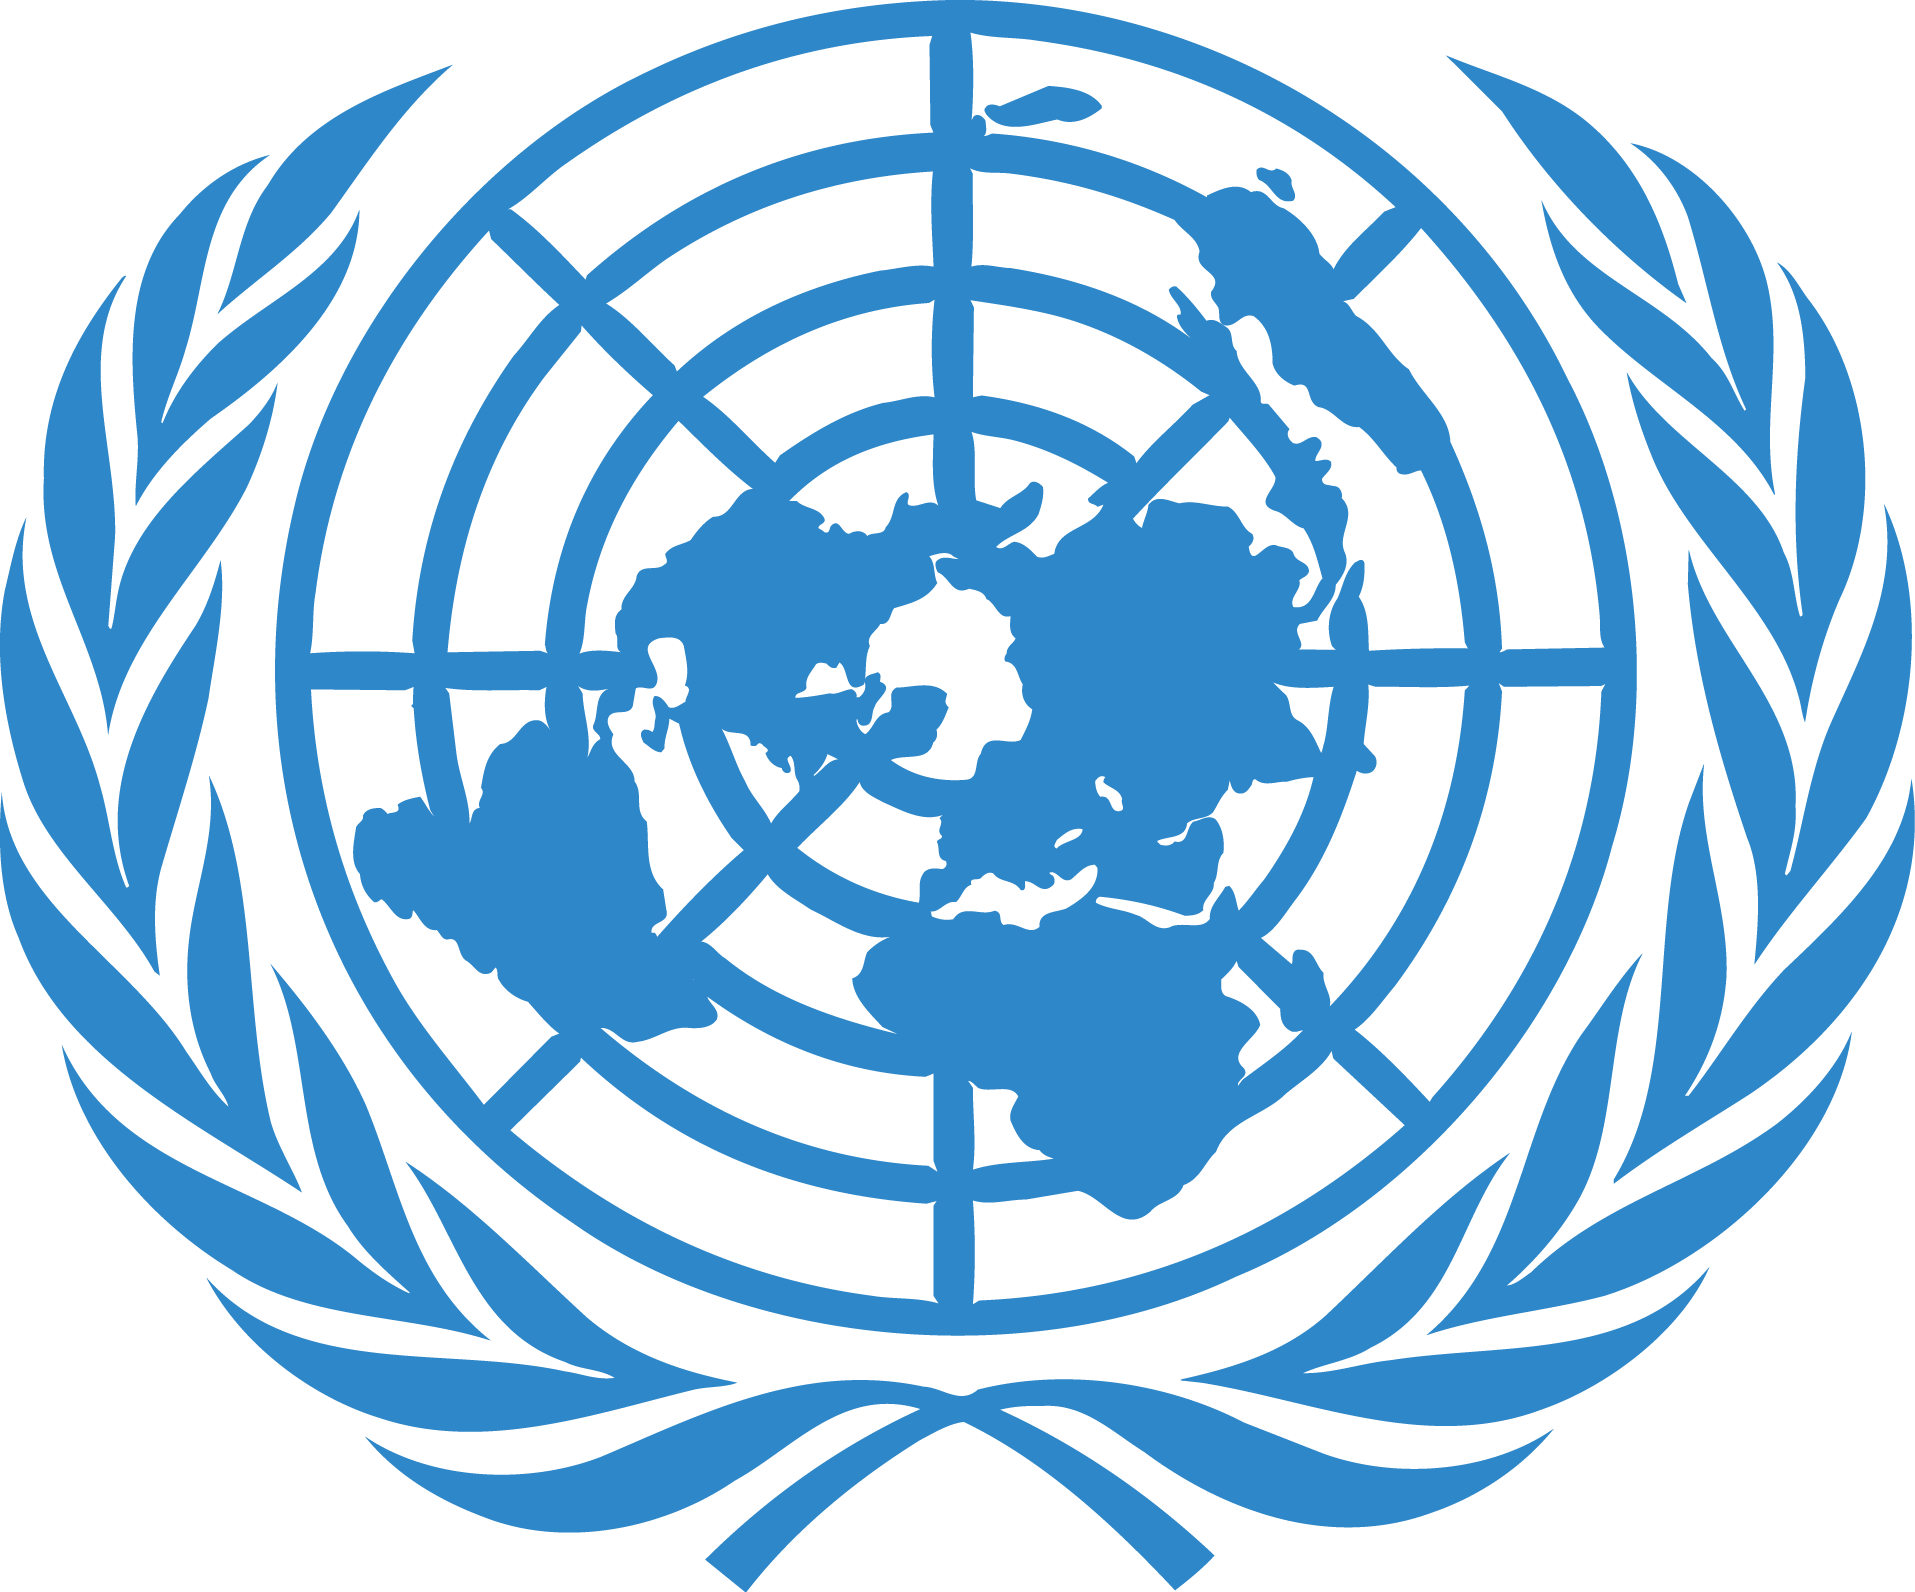 United nations logo clipart Transparent pictures on F.